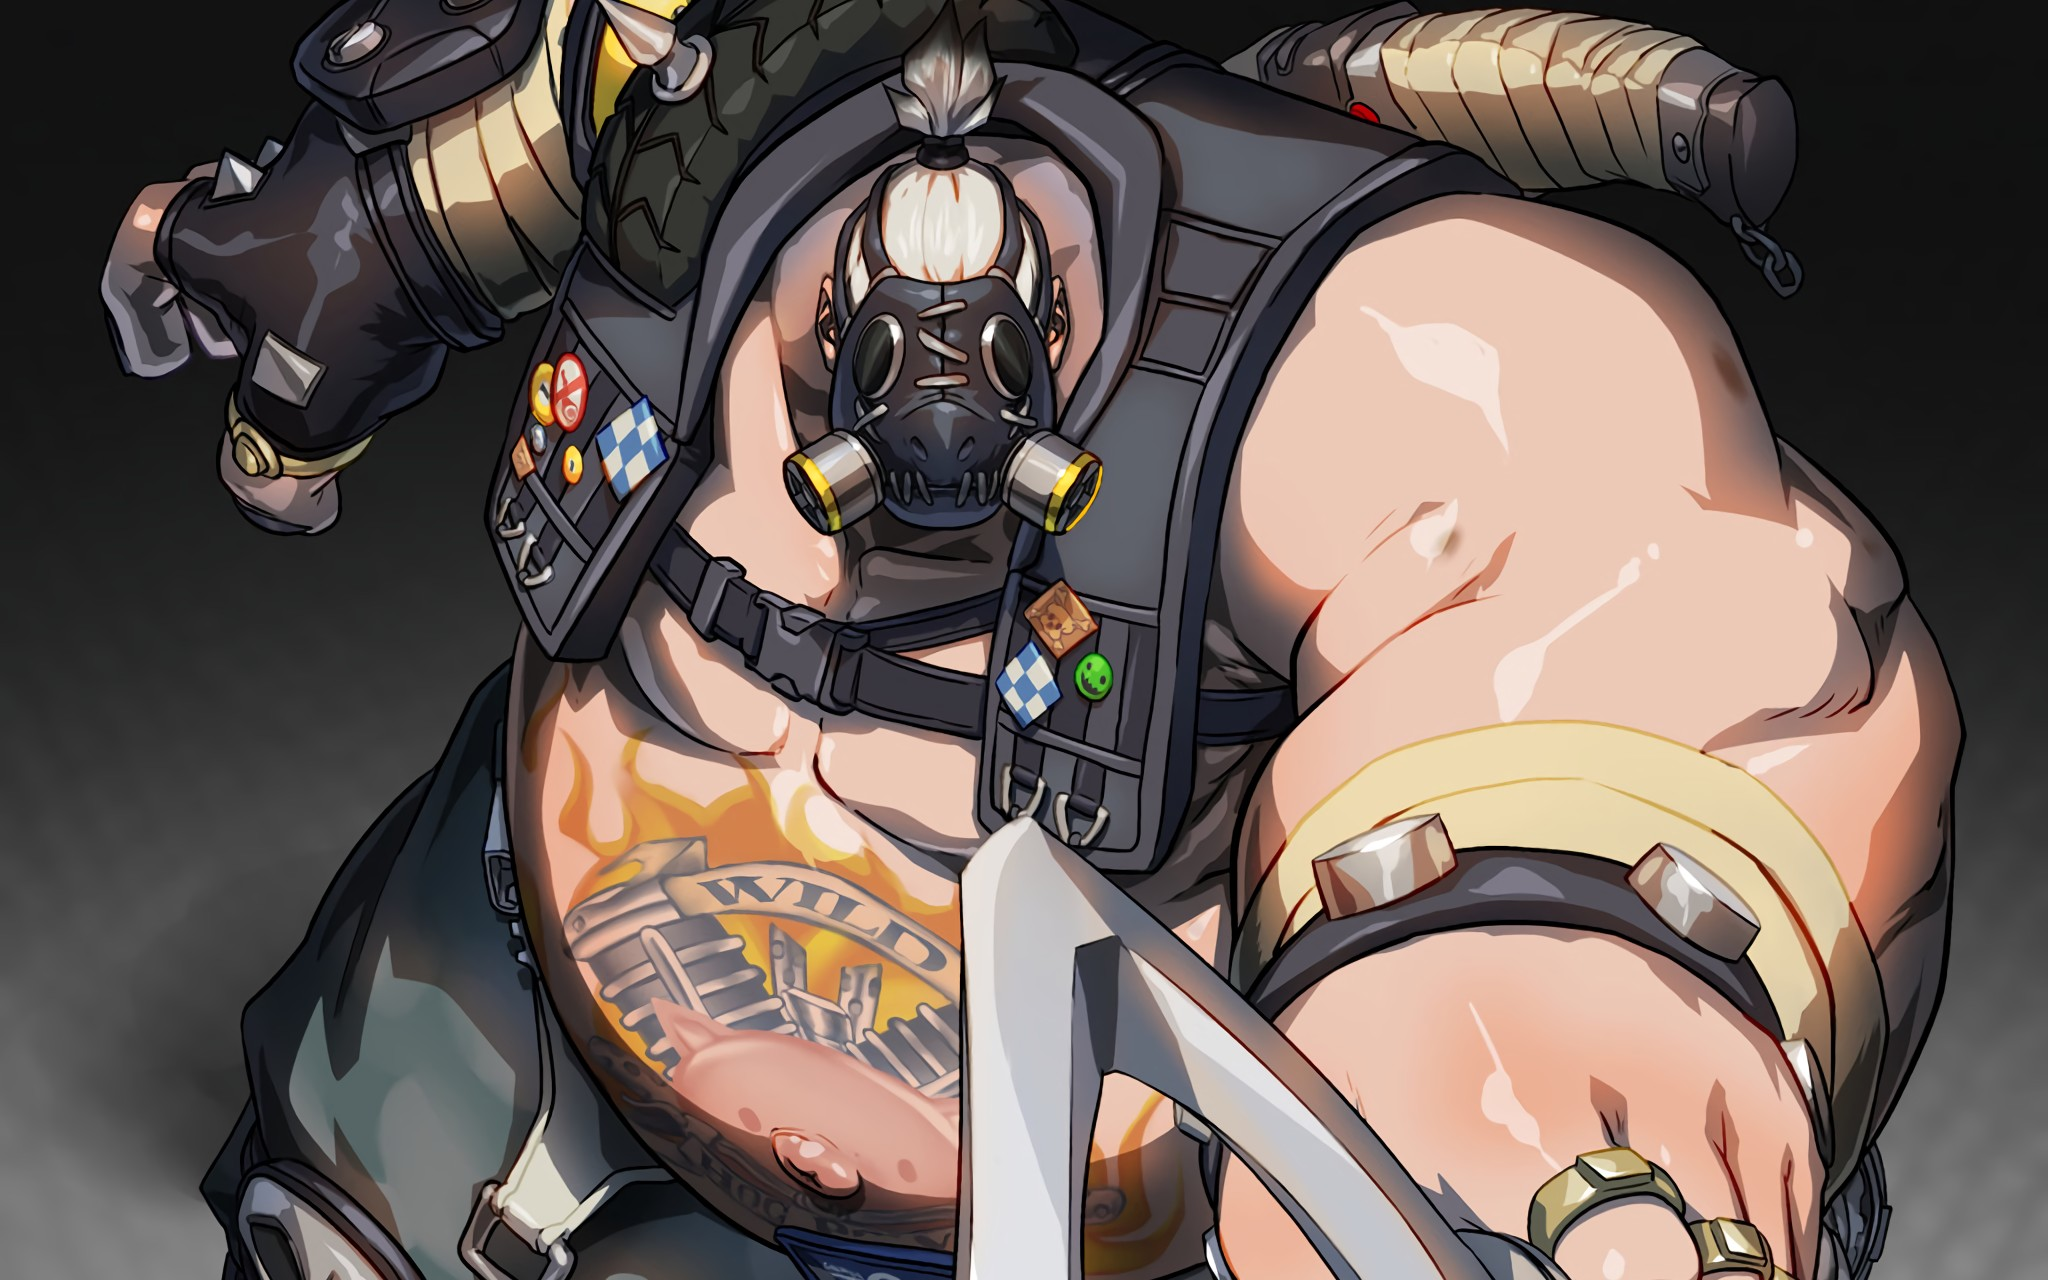 Overwatch Wallpaper 1080p Download Free Cool High: Roadhog Wallpaper ·① Download Free Stunning High